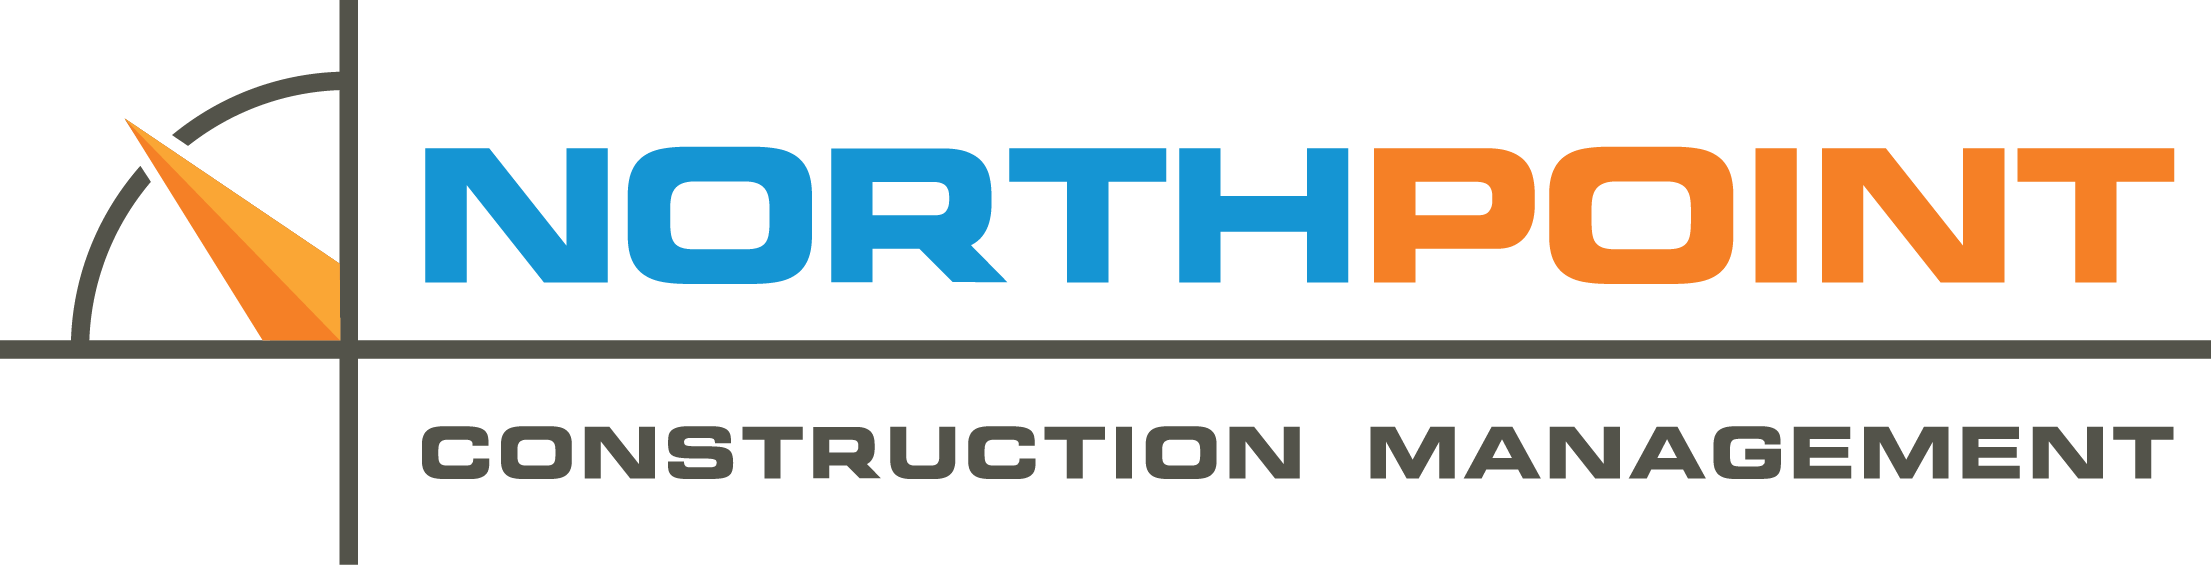 northpoint_logo_final.png